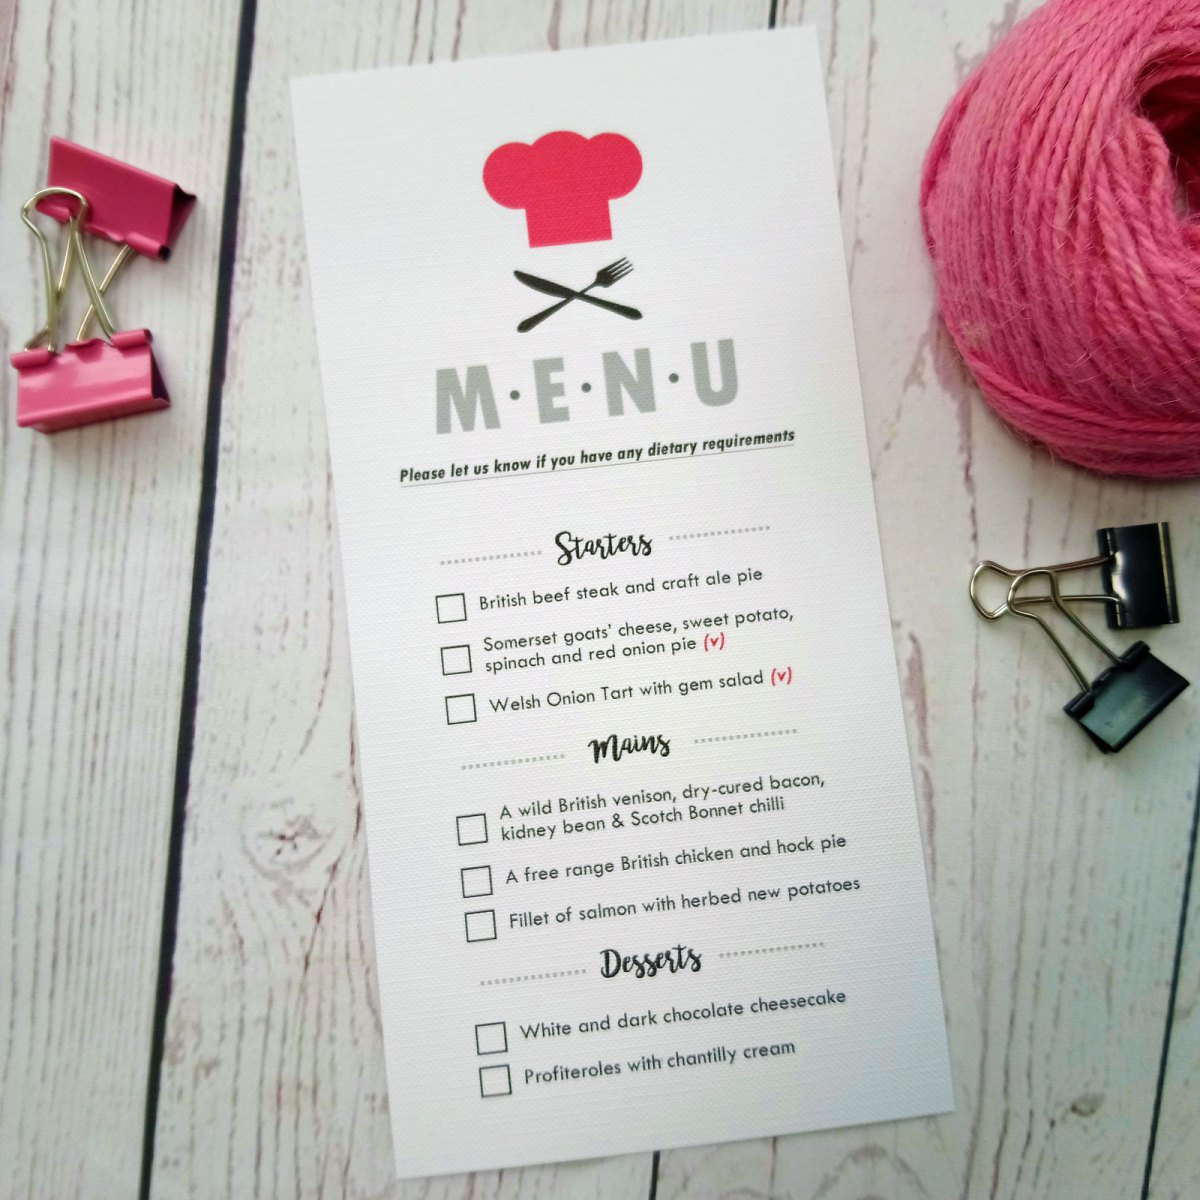 Pink cook hat and black fork and knife Boy Meets Girl Wedding Menu Card with meal choice tick boxes